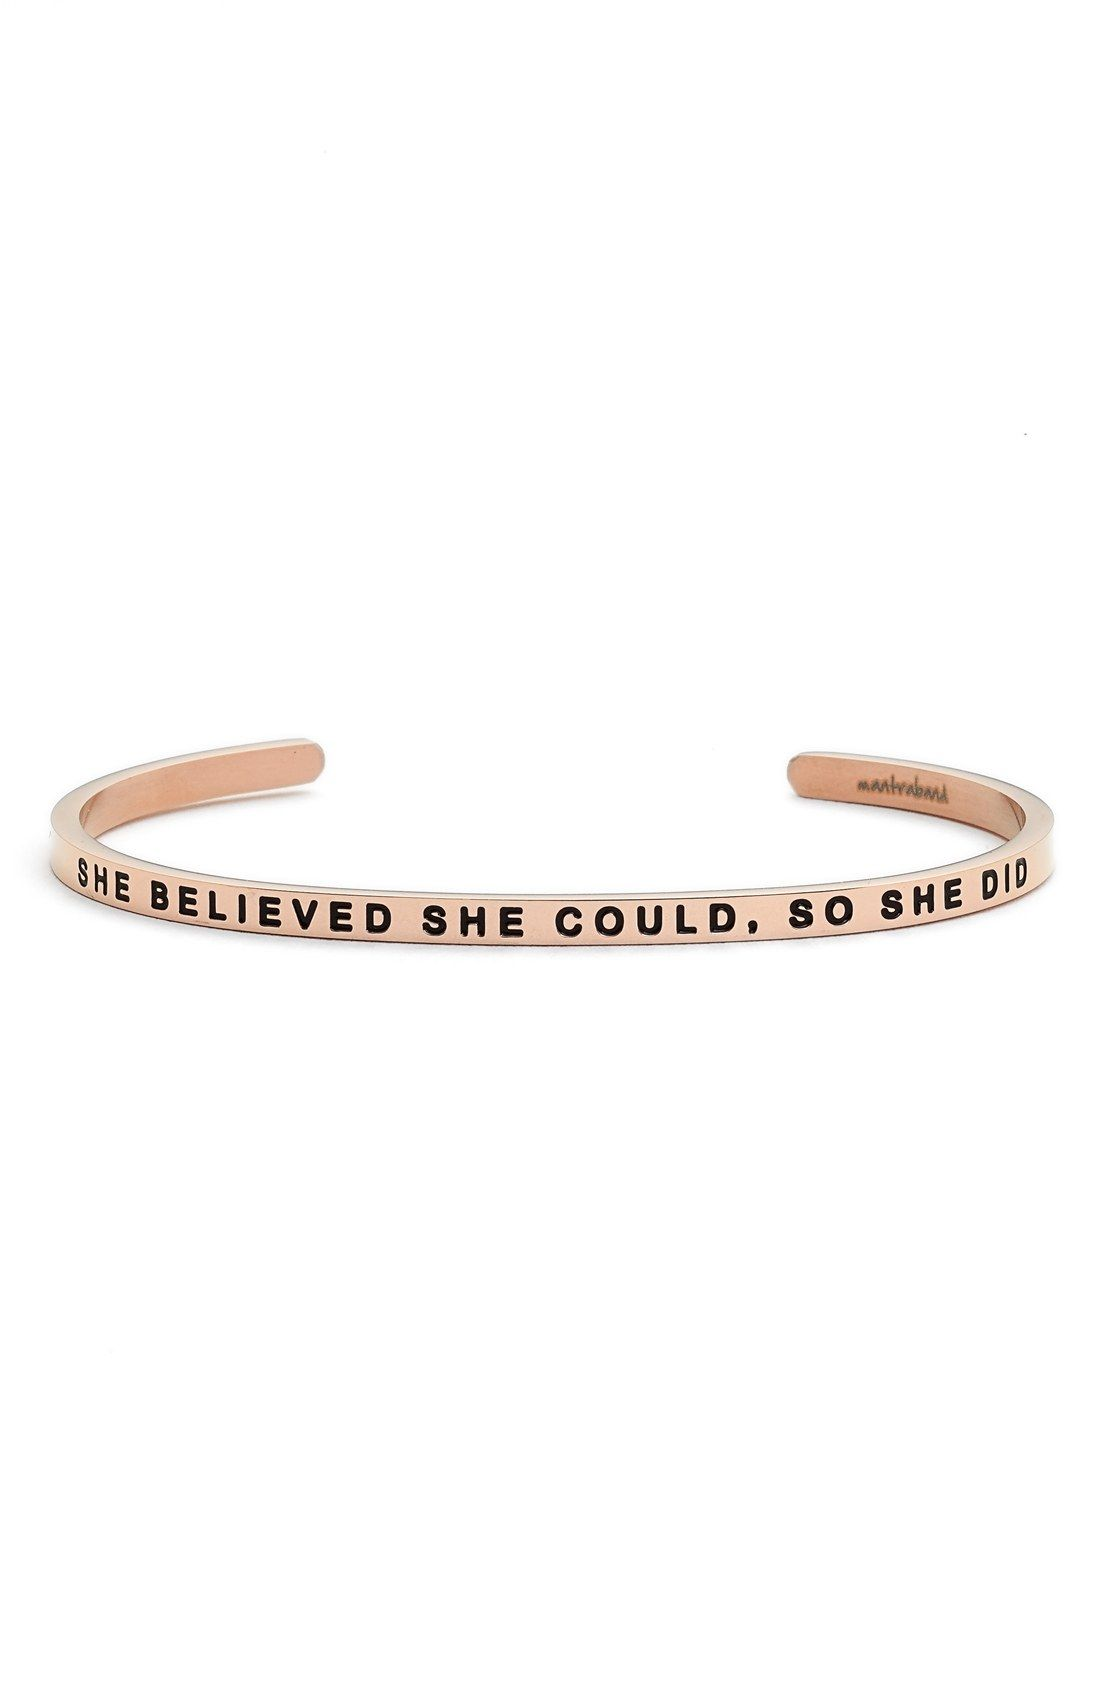 Hope Anchors the Soul Bar She Believed She Could So She Did Engraved Bracelet